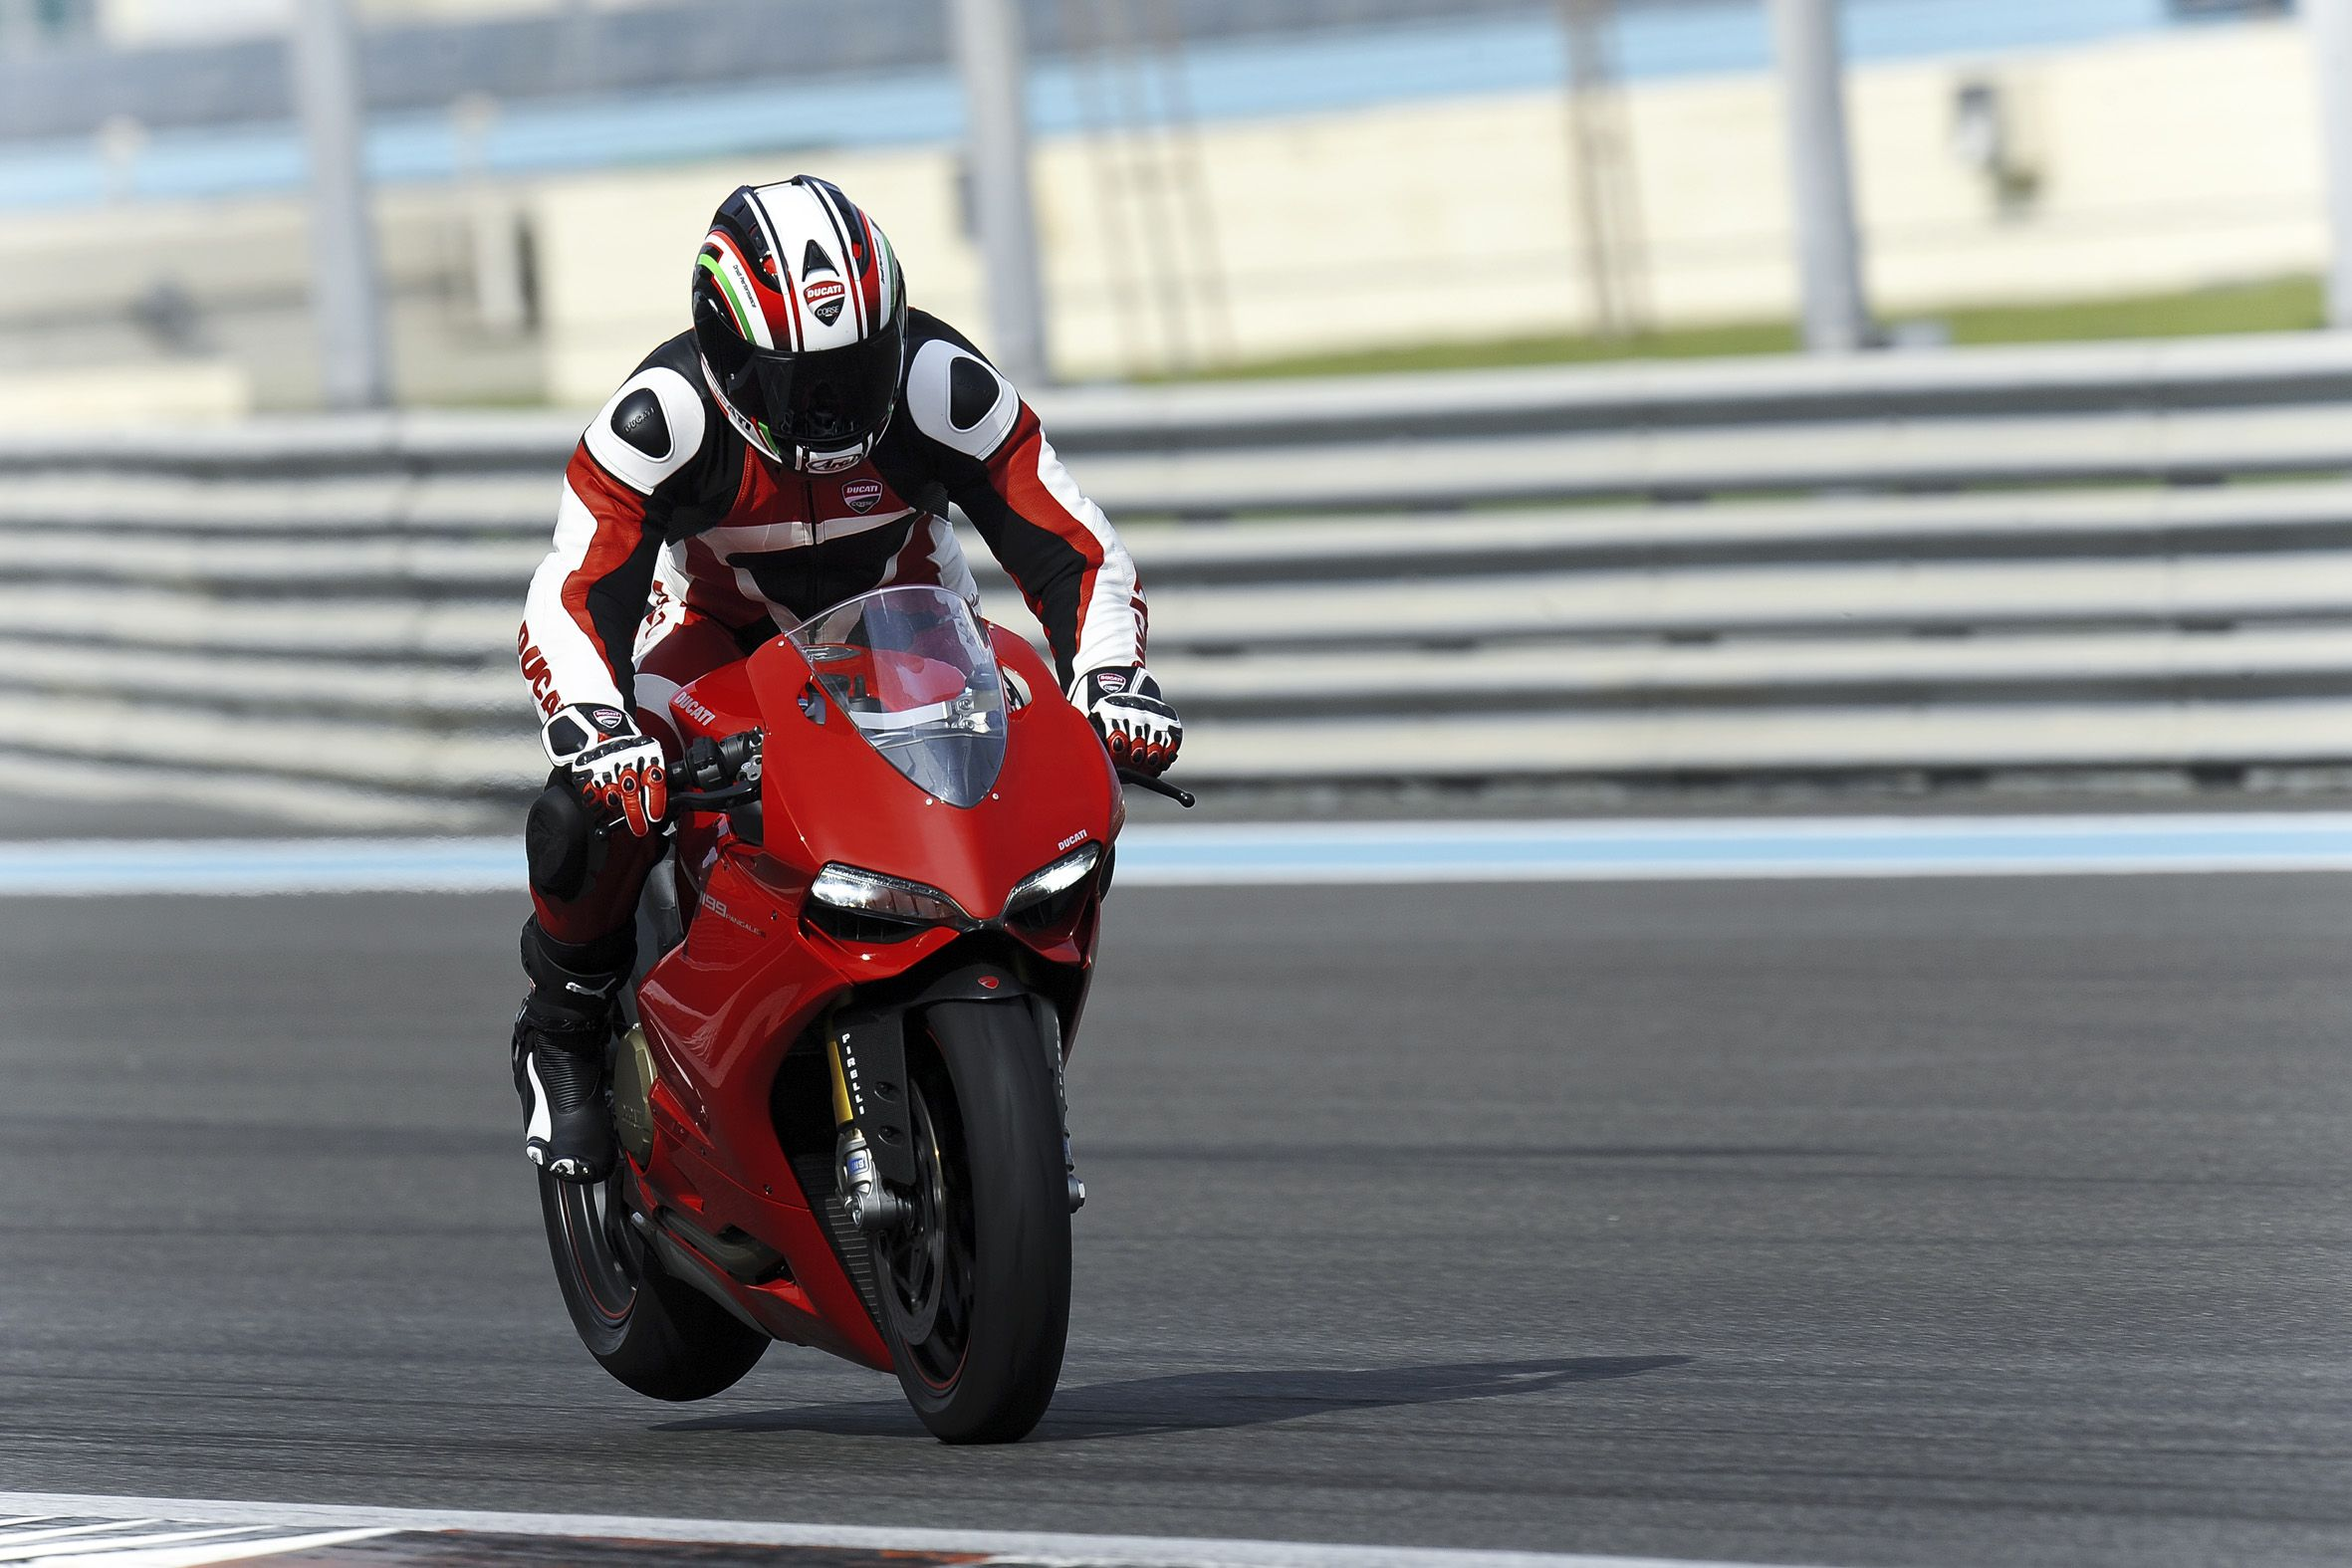 Ducati 1199 Panigale The Best Looking Sports Bike I Have Seen For